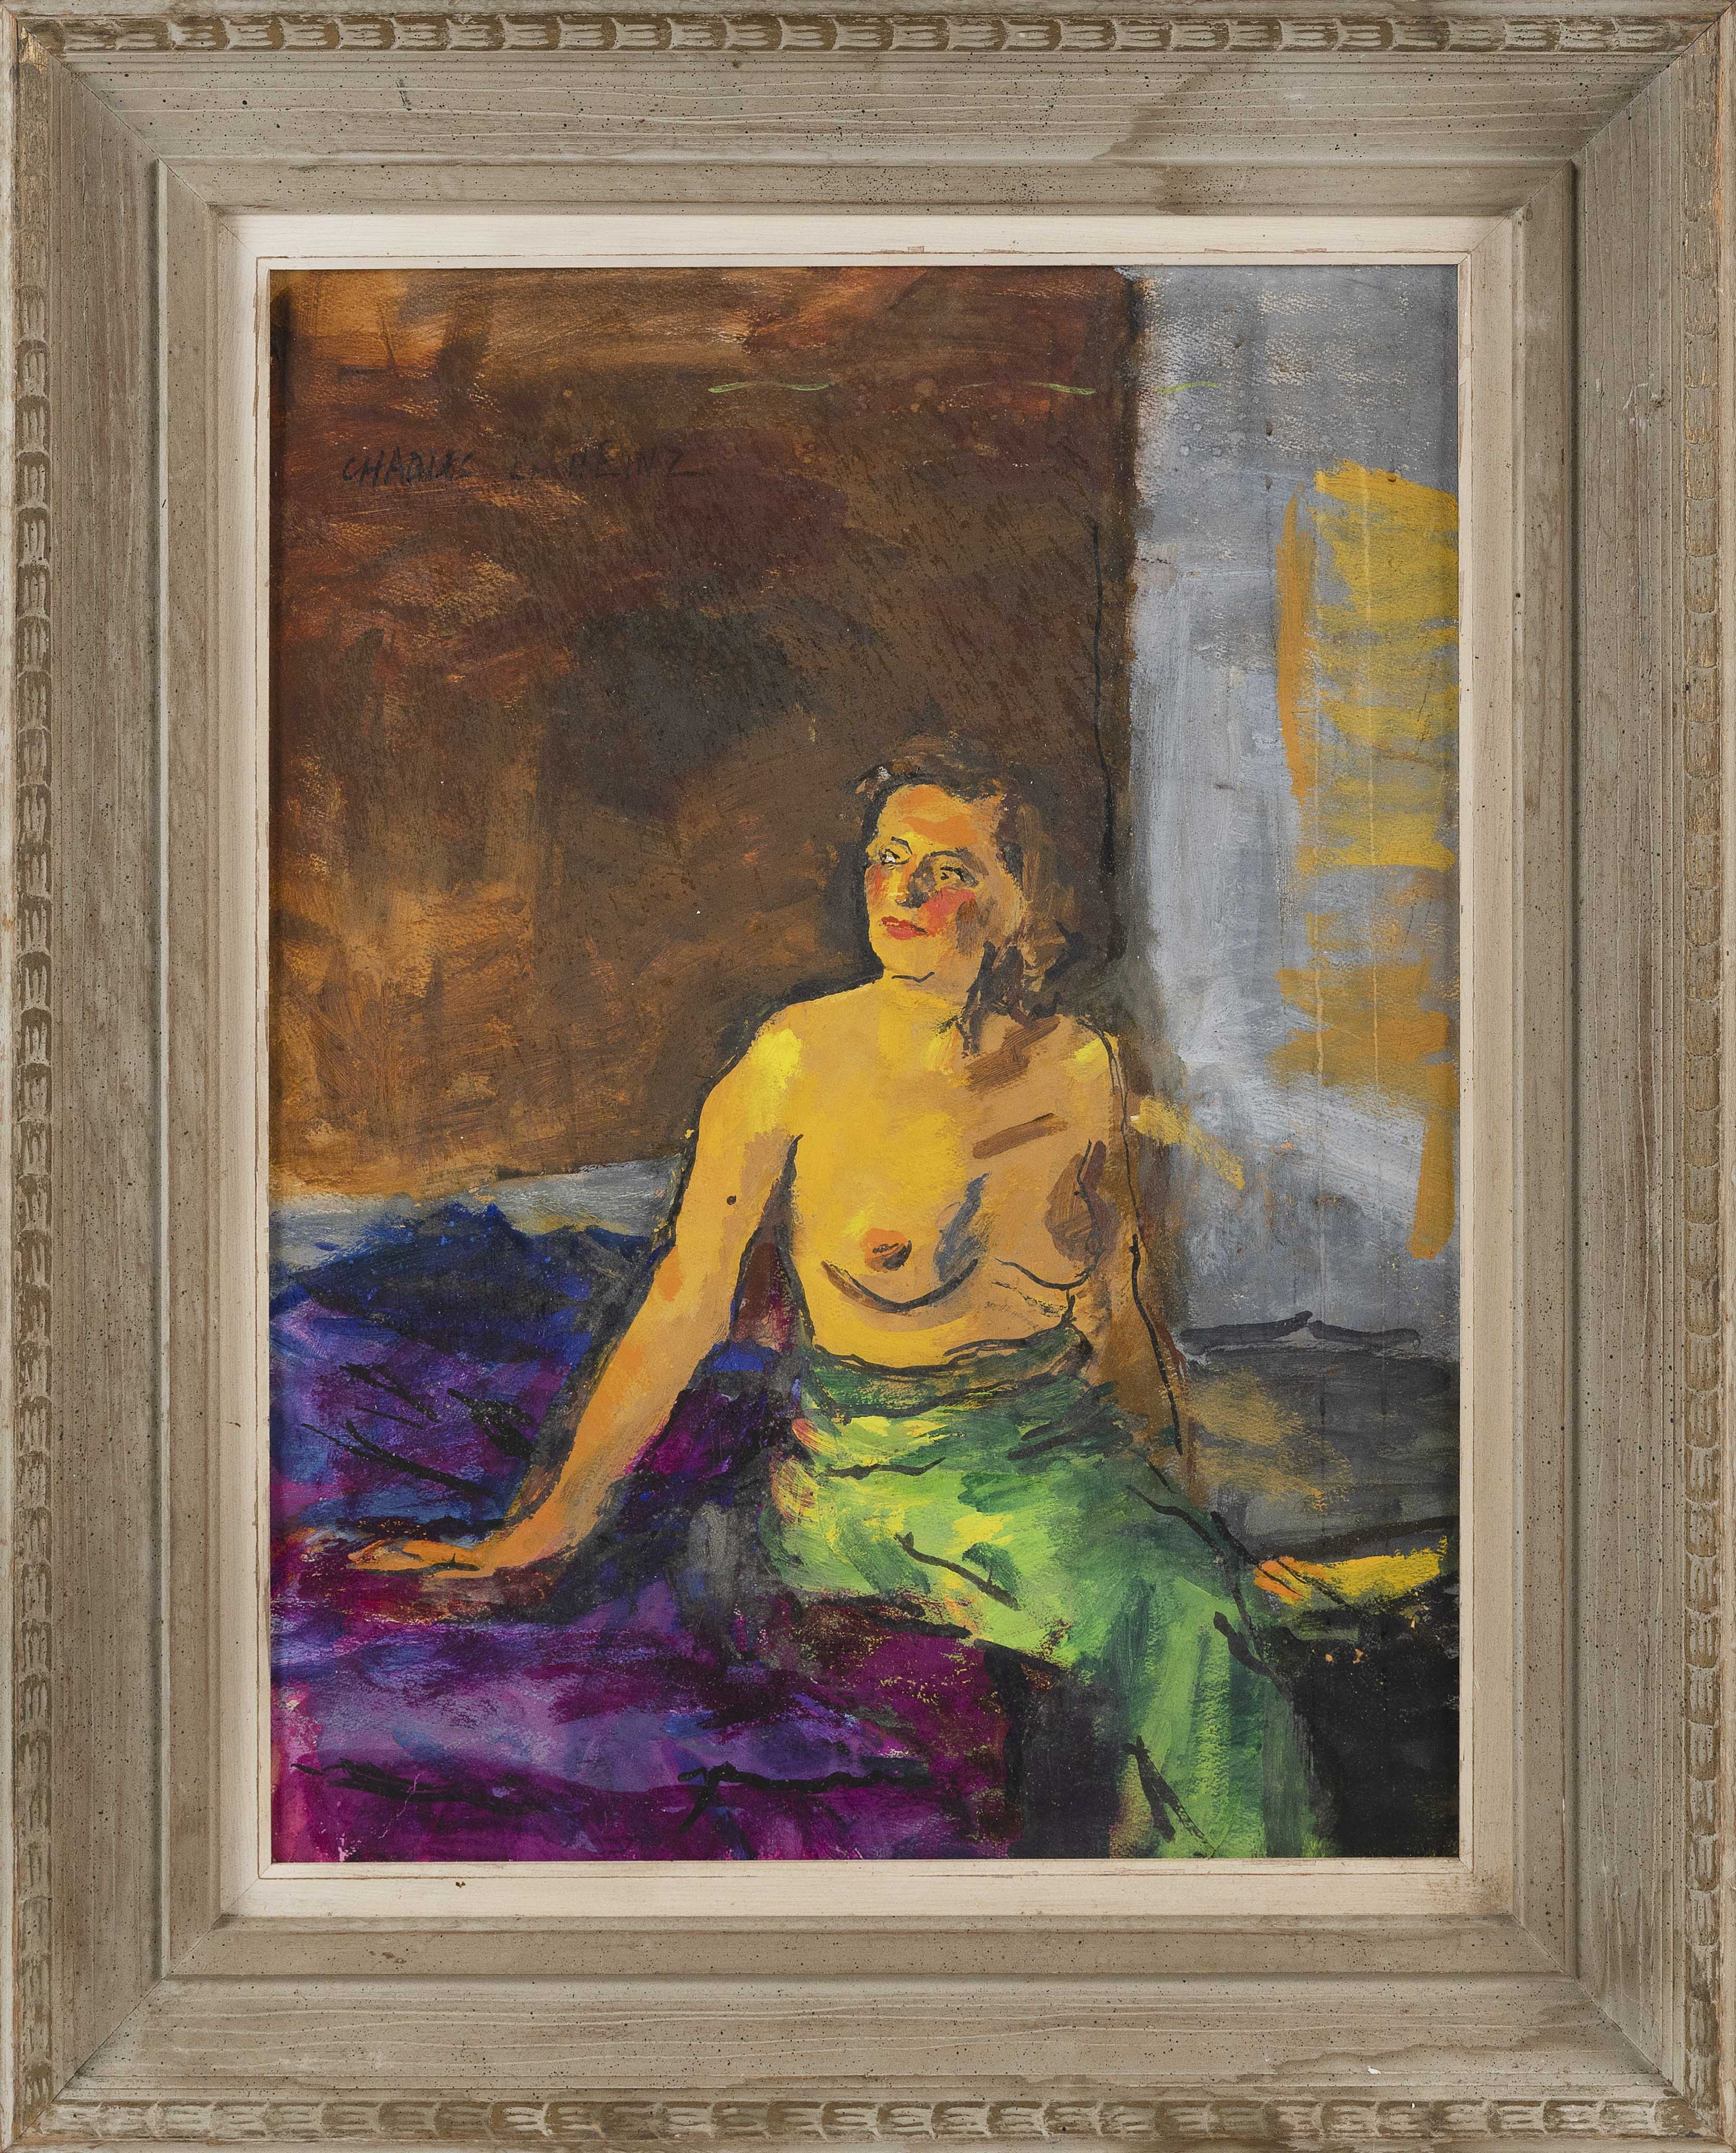 """CHARLES L. HEINZ (Illinois/Massachusetts, 1884-1953), Portrait of a partially nude woman seated on a bed., Oil on paper, 17.5"""" x 11.5"""". Framed 31"""" x 25""""."""